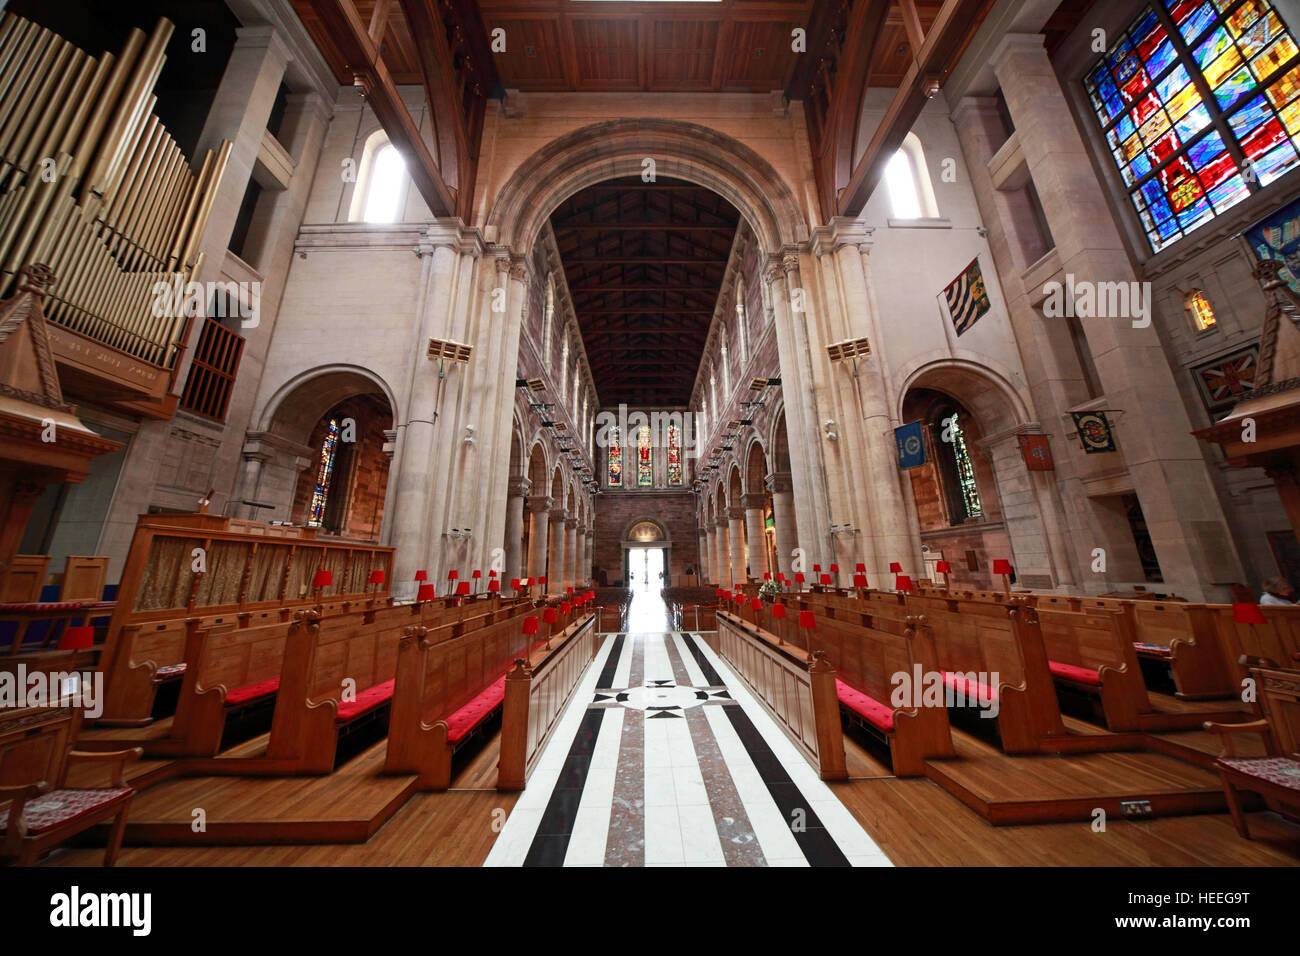 St Annes Belfast Cathedral Interior,from altar, Ireland - Stock Image